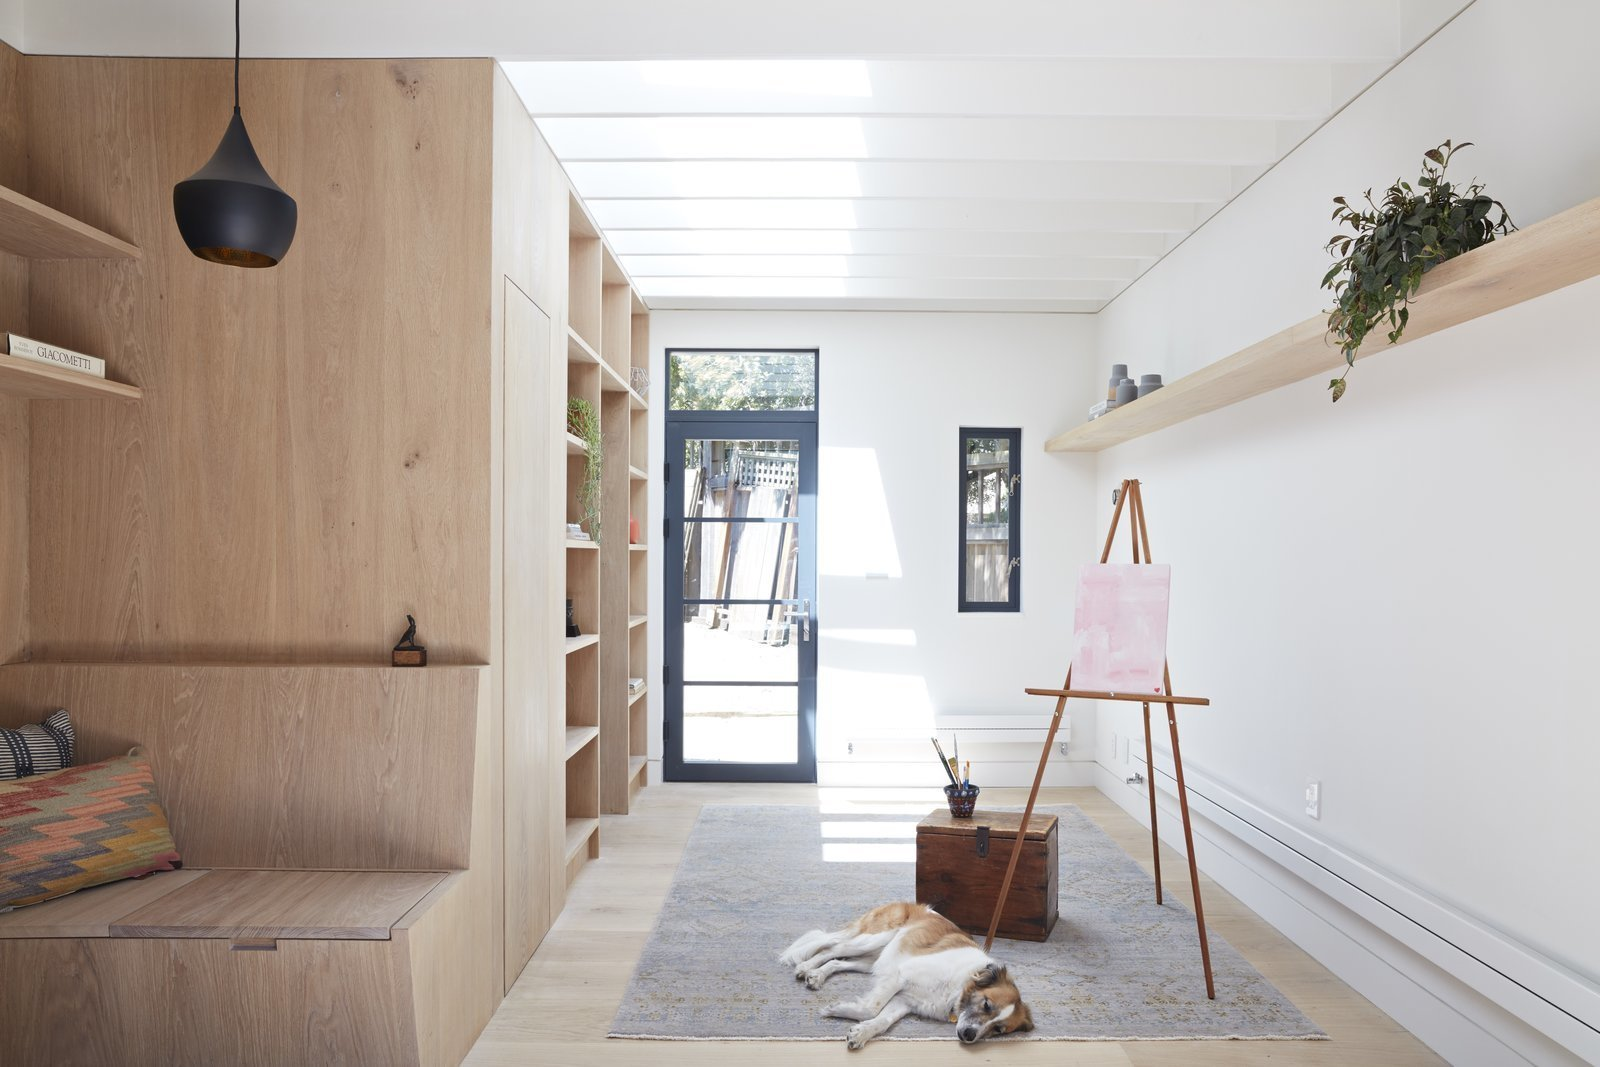 Shed & Studio, Storage Space, Living Room, and Living Space When San Francisco-based architect Beverly Choe took on the project of re-envisioning an old garage (once used as a carriage house that had become a dark and empty space), she sought to create an open and meditative backyard studio where a family can easily retreat to work, relax, and create—with a goal of making it a  Shed & Studio Living Room Photos from An Unused Garage Is Transformed Into a Light-Filled Backyard Studio